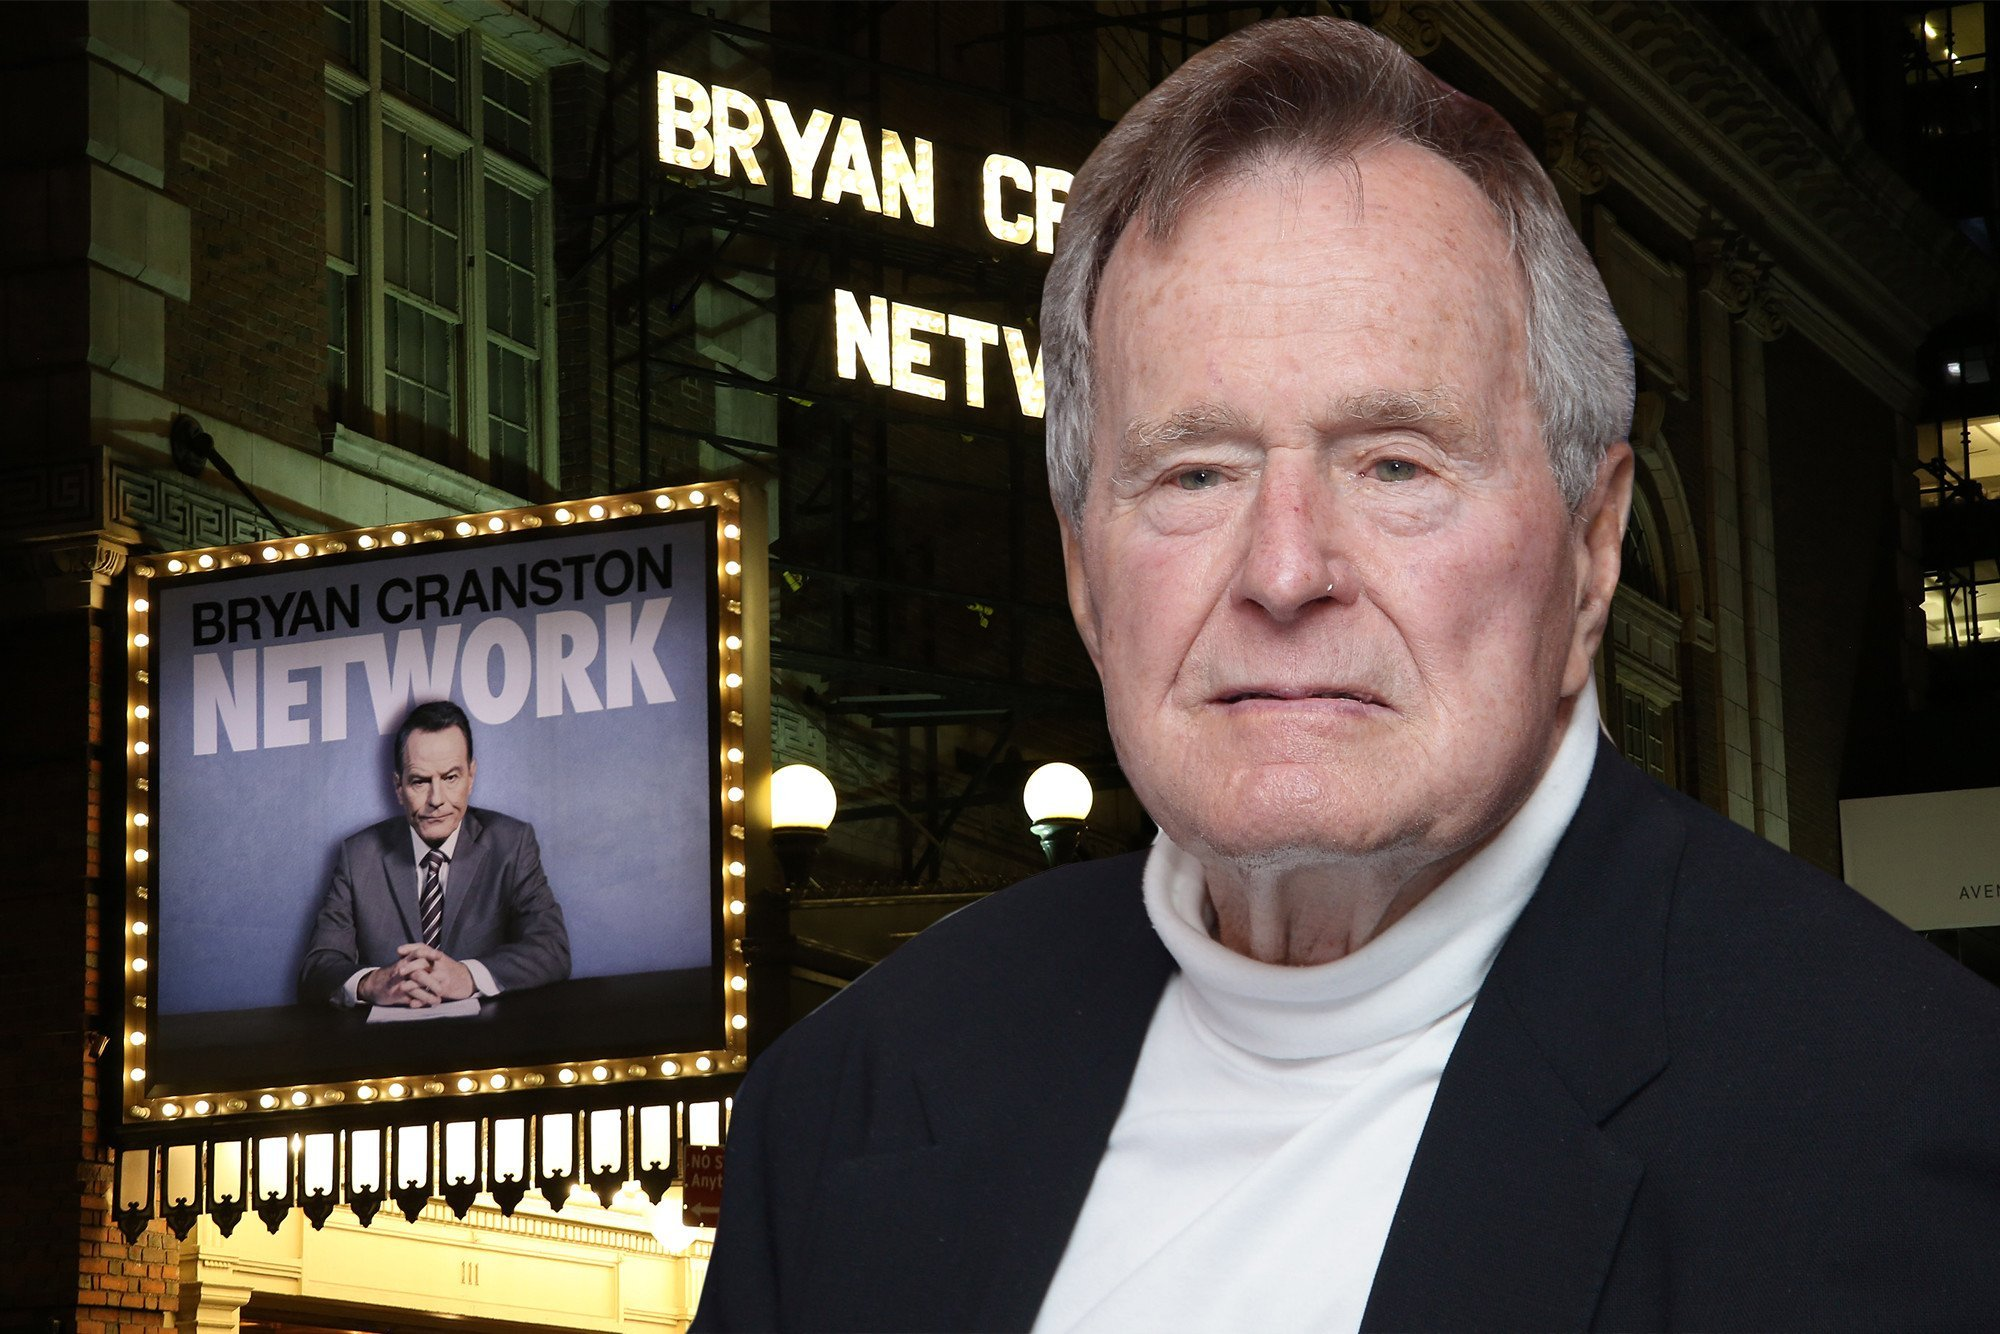 'Network' audience pays tribute to George H.W. Bush